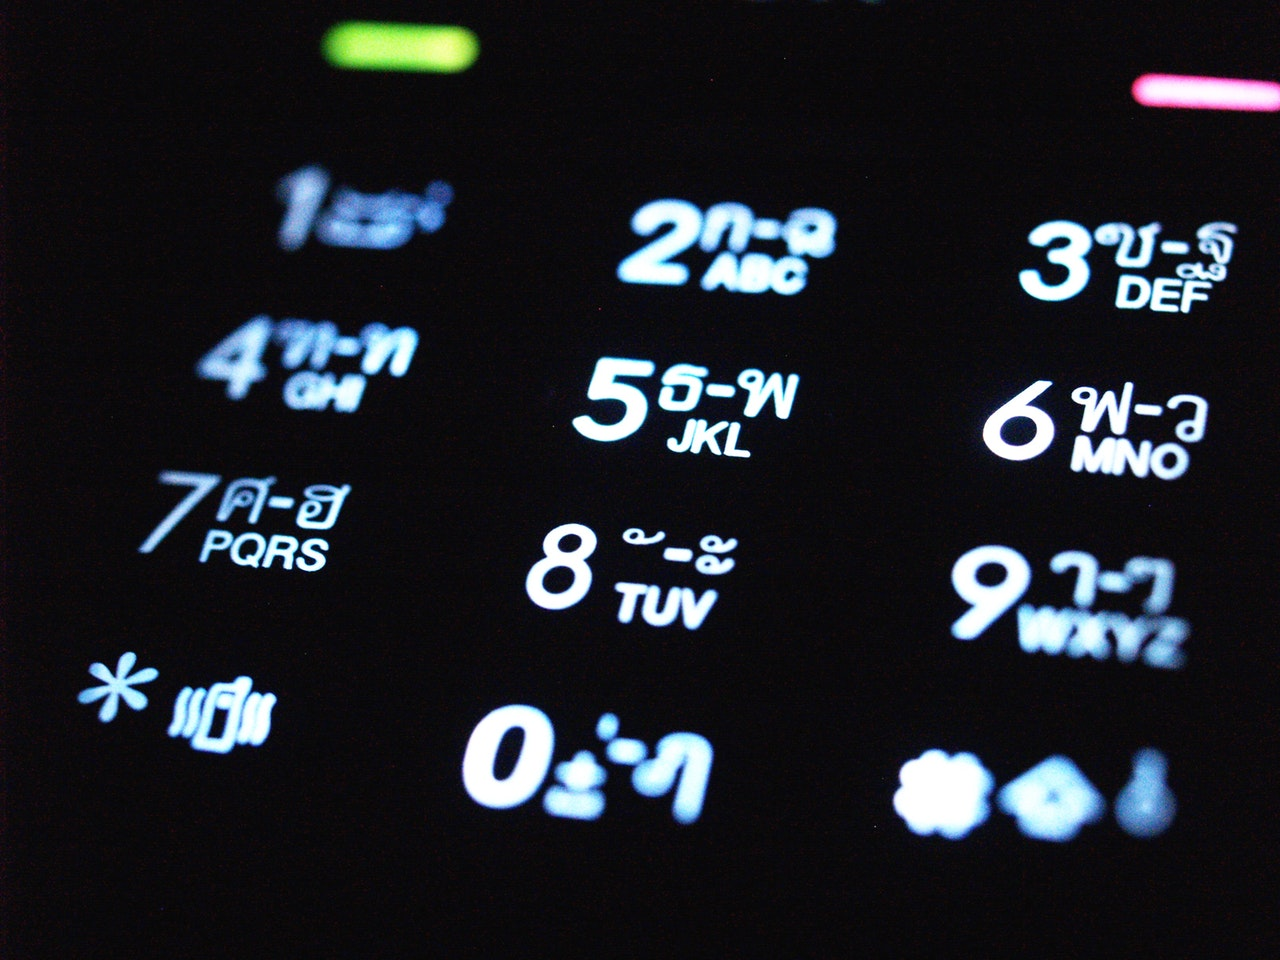 Cheap International Call Rates for Your Business